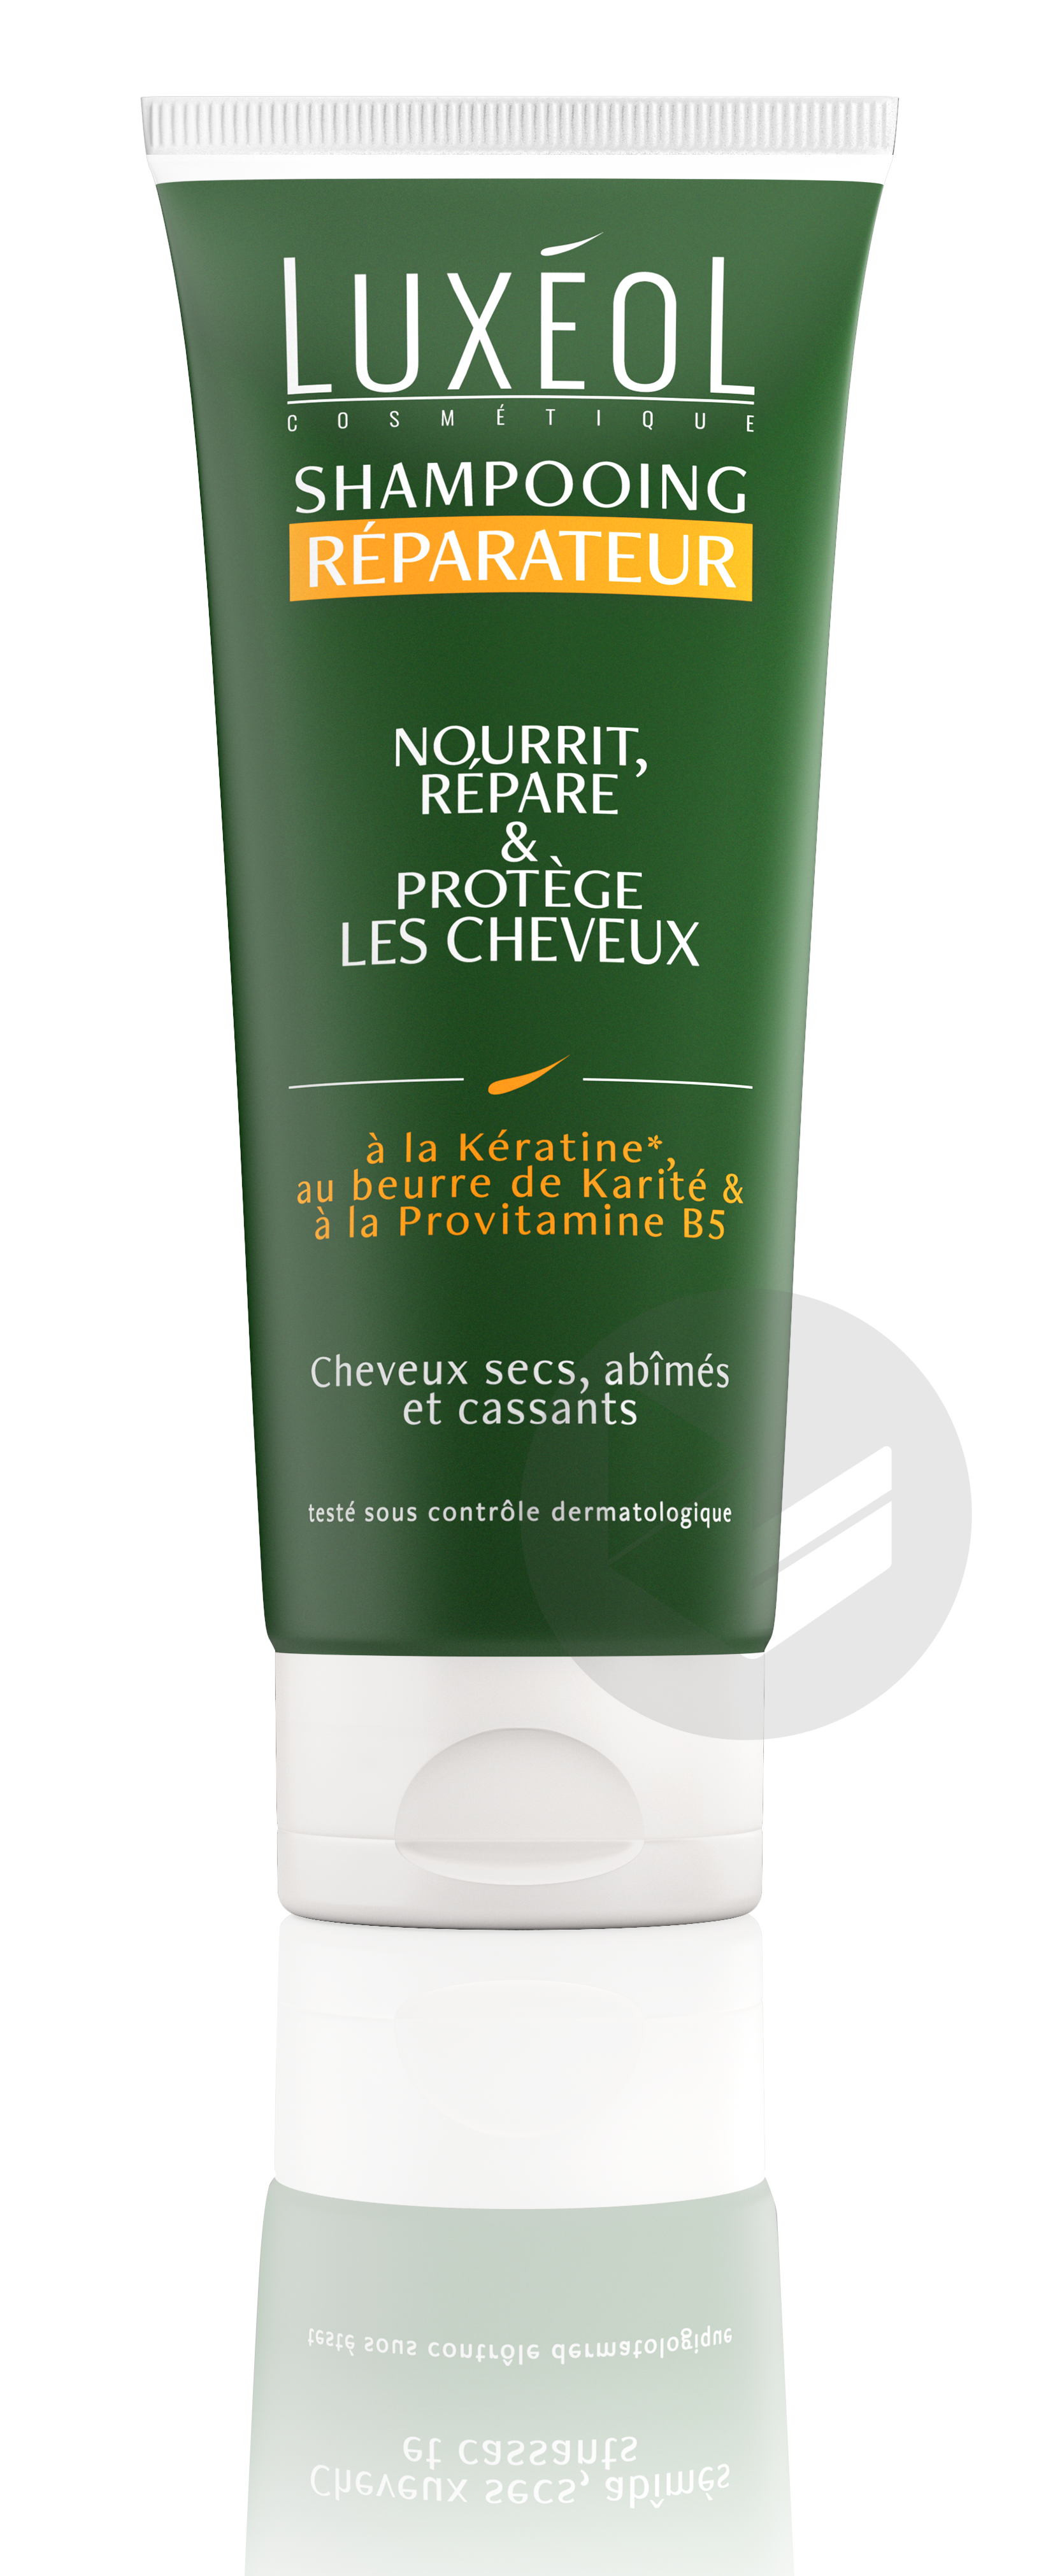 Luxeol Shampooing Reparateur